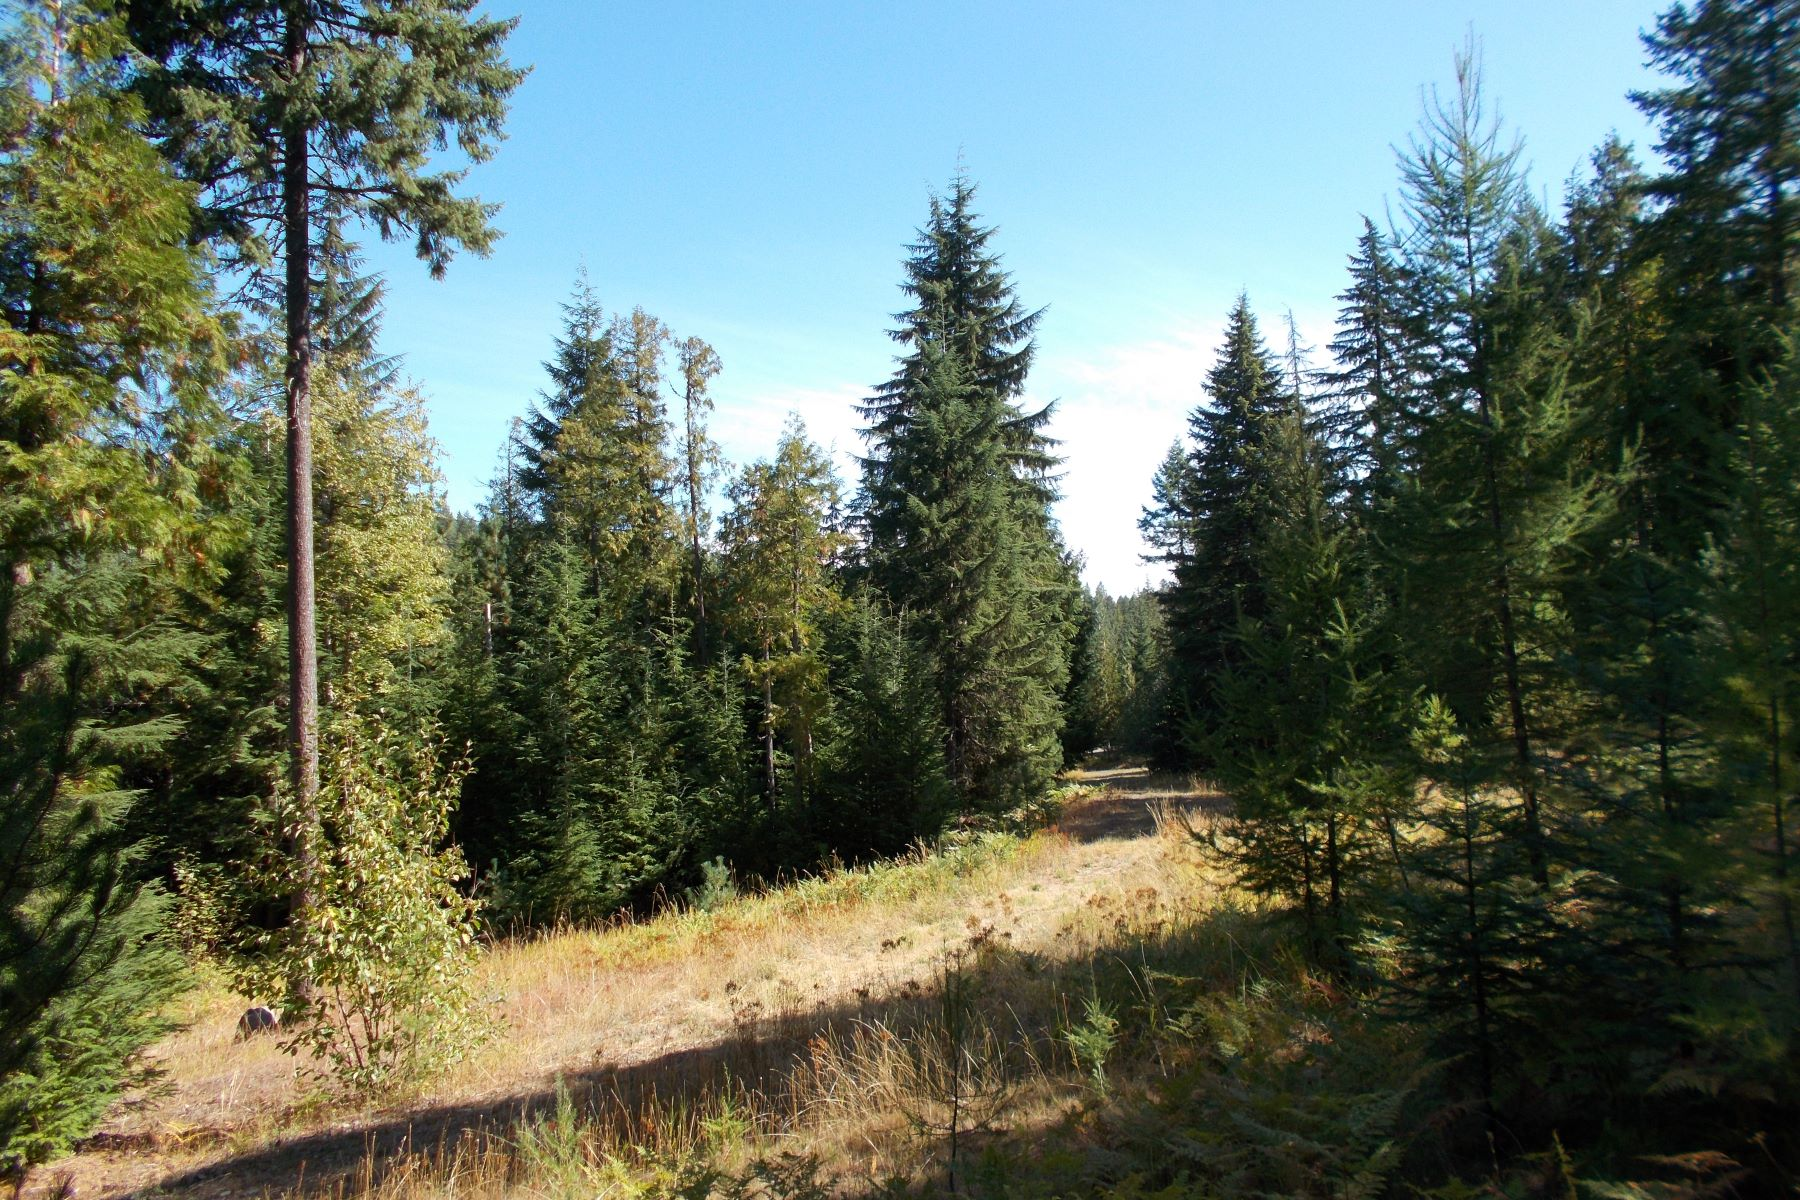 Land for Sale at 8+ acres on paved road with existing well NNA Lot 3 Off Lakeshore Drive Sagle, Idaho 83860 United States